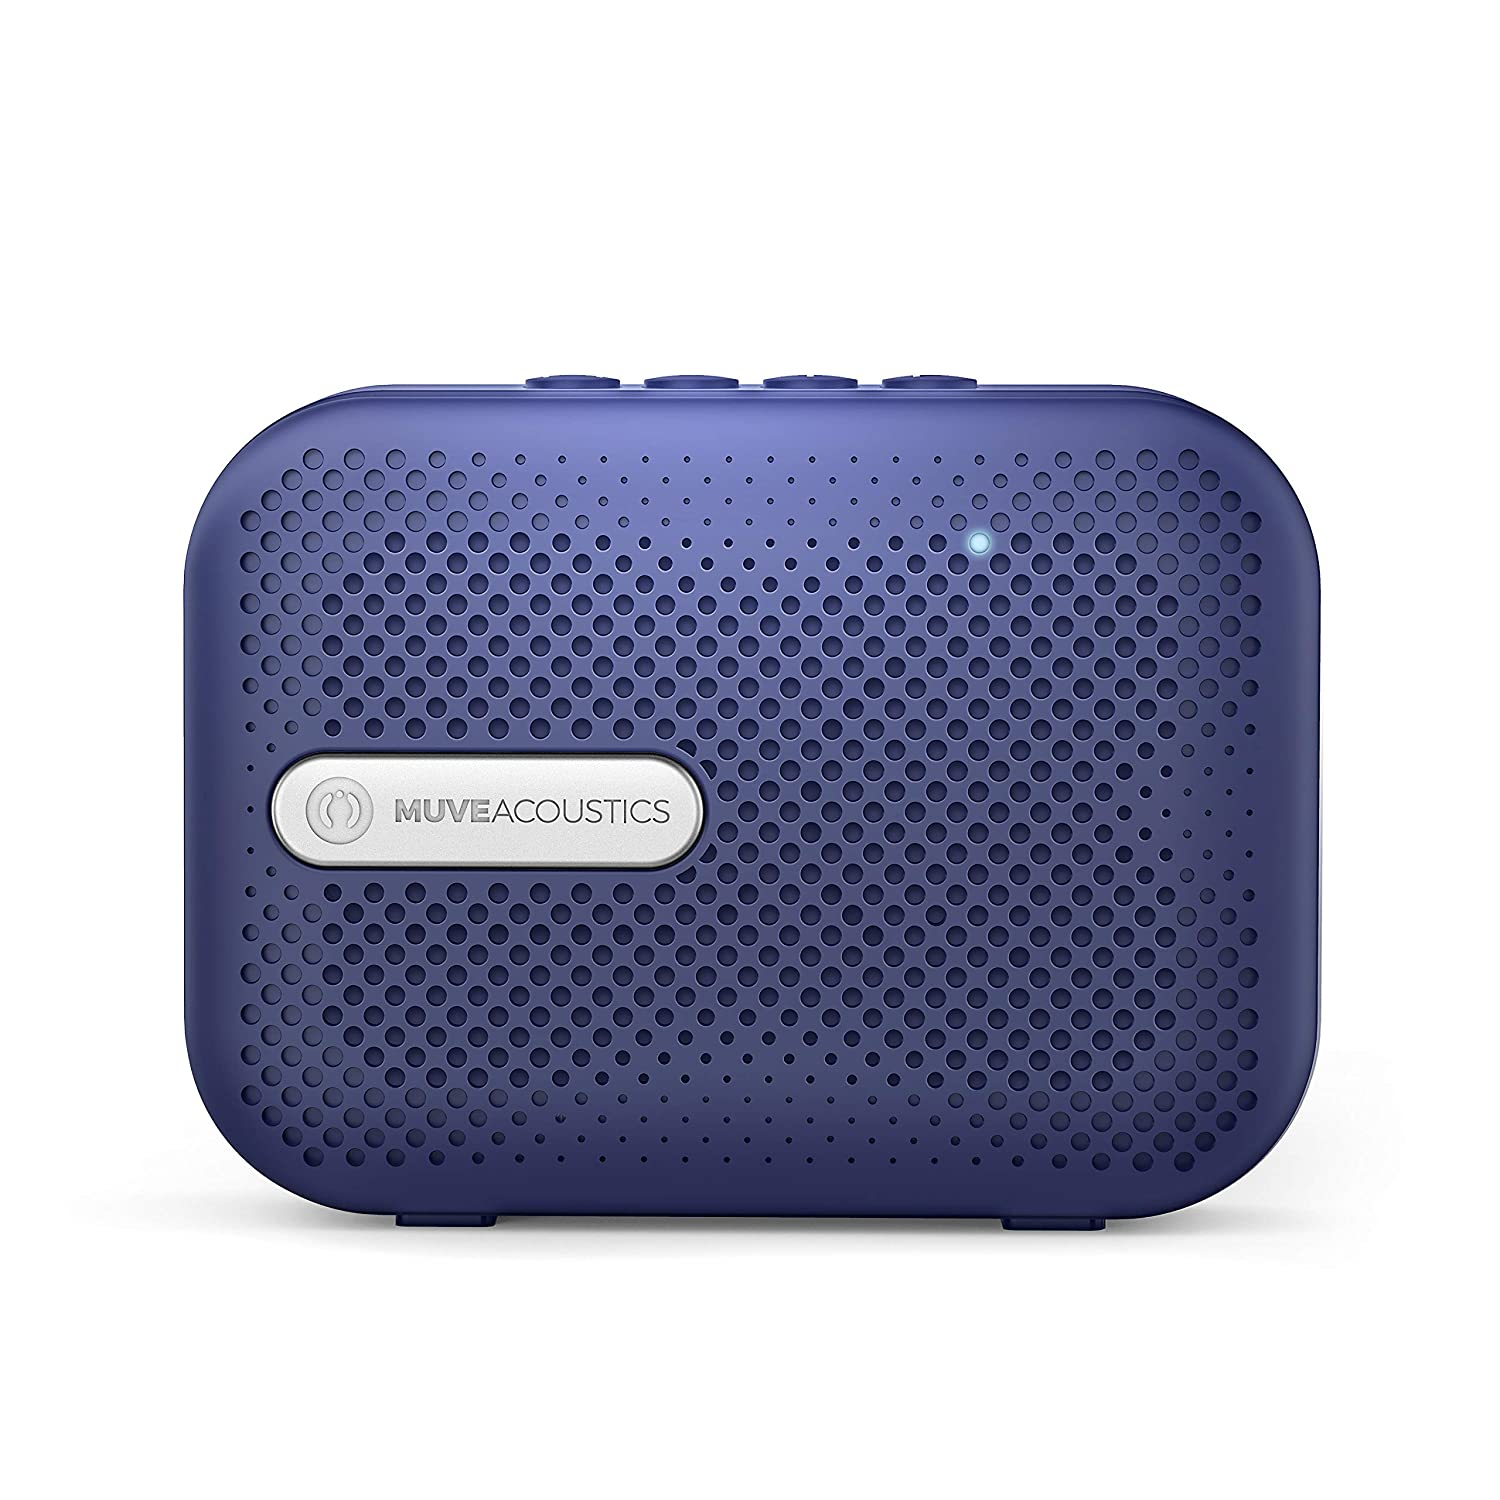 MuveAcoustics Box Portable Wireless Bluetooth Speaker with